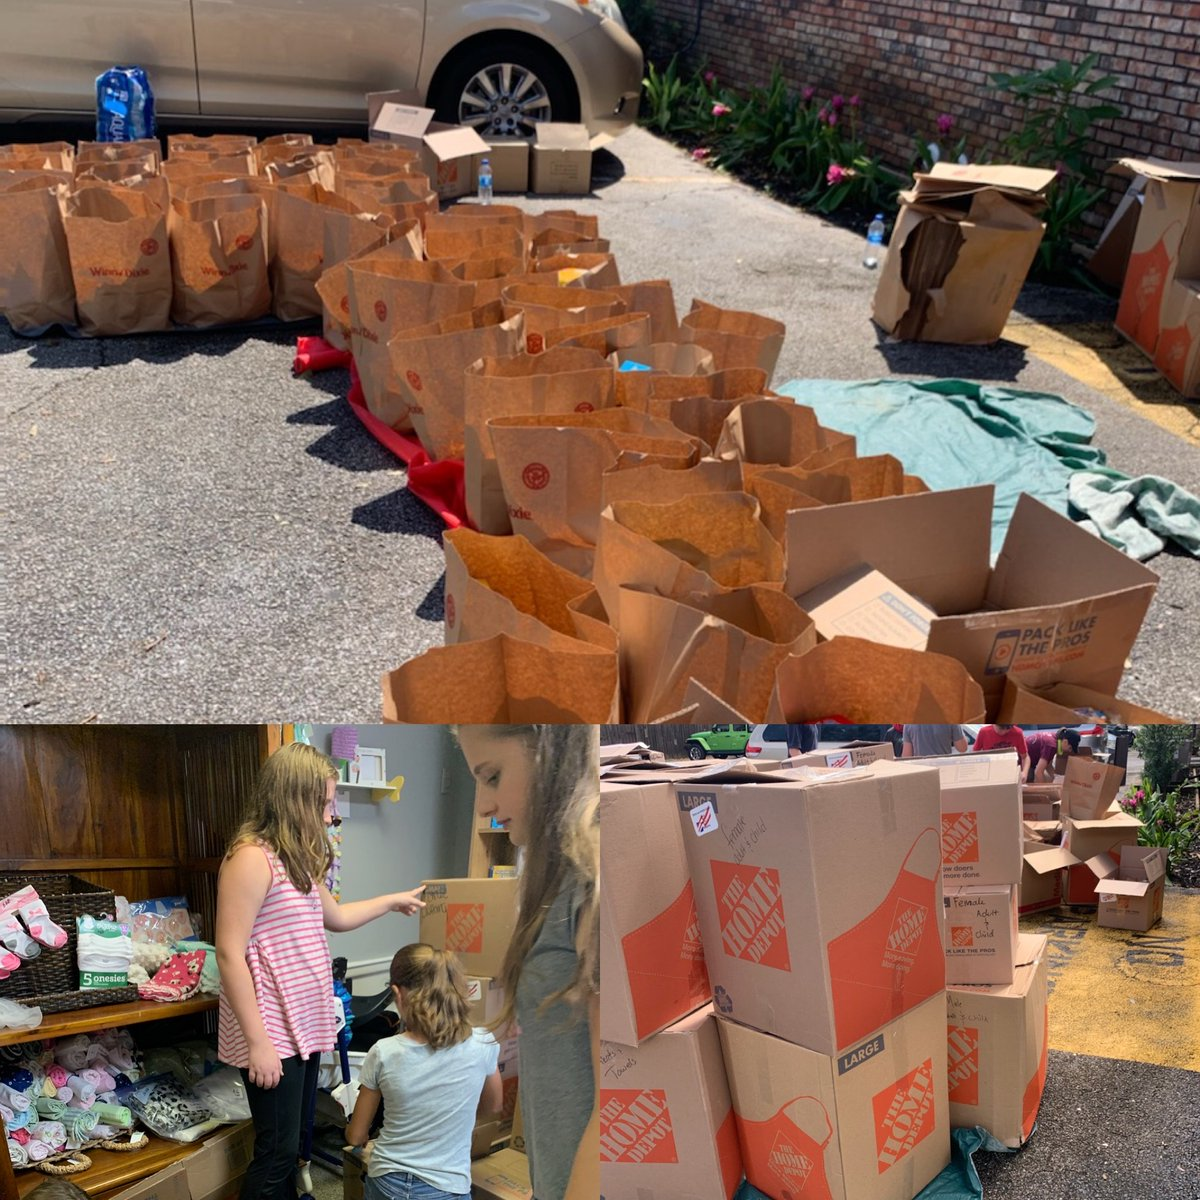 Donations are helping 8 groups including a homeless shelter, homeschooling families, churches and two hard-hit communities in Escambia Co.  We thank the students and staff of Lee Middle, along with all who donated, for representing Manatee County in a wonderful way! #WeManatee